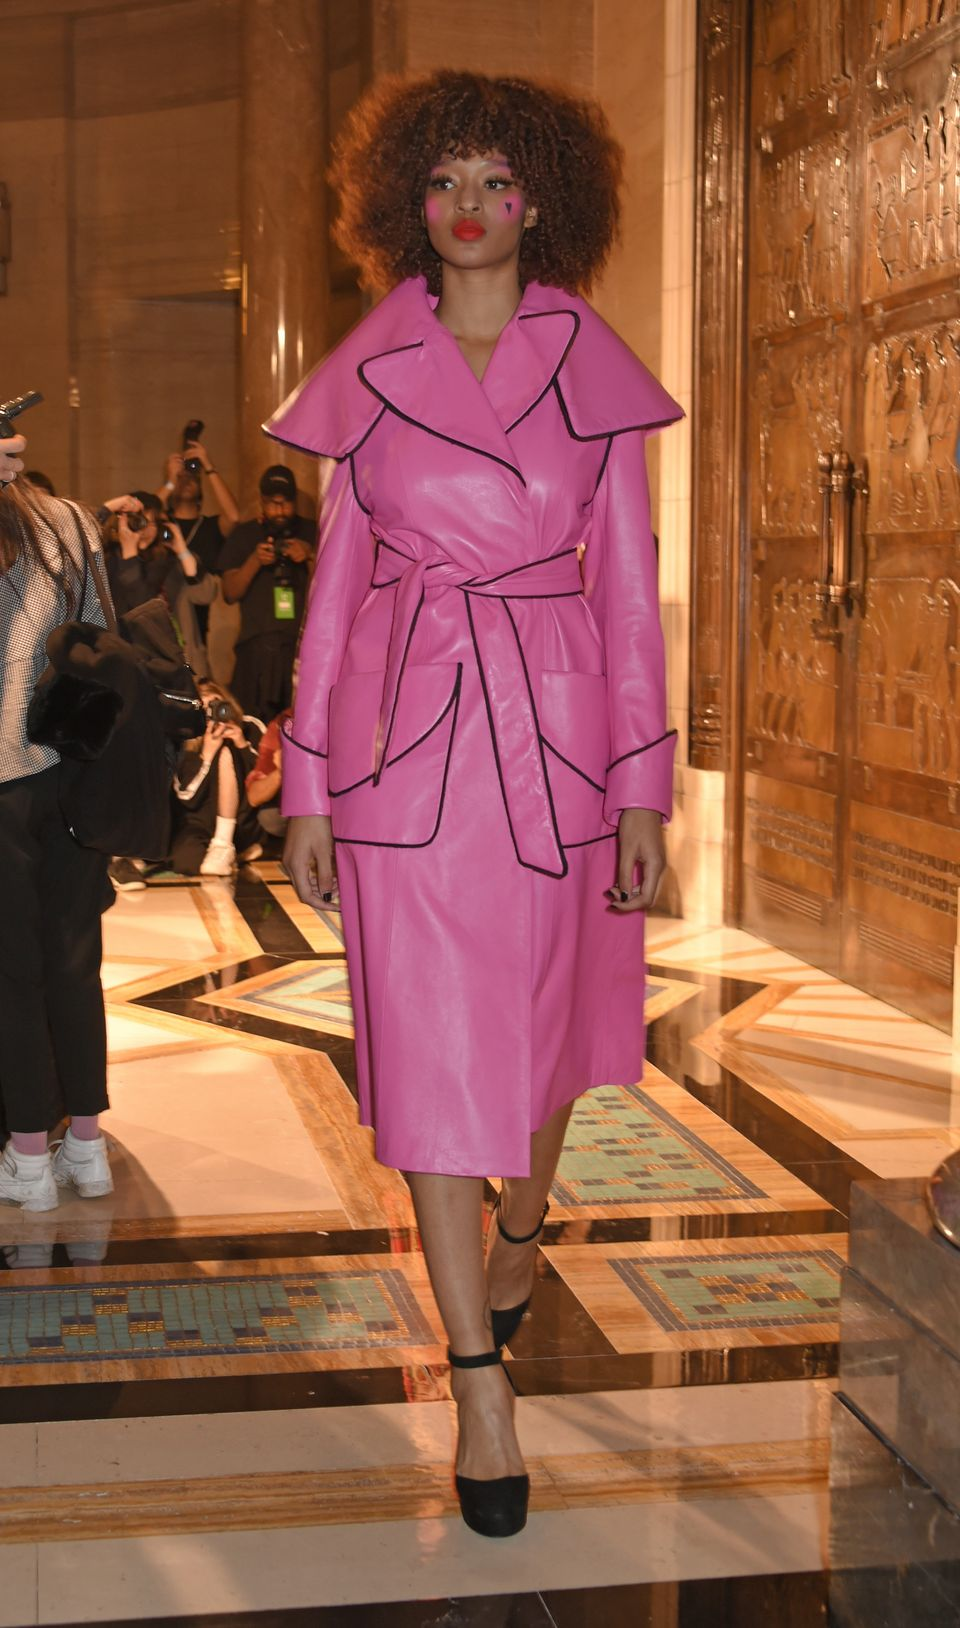 Pam Hogg showed us how it's done with this hot pink leather coat during her show this London Fashion